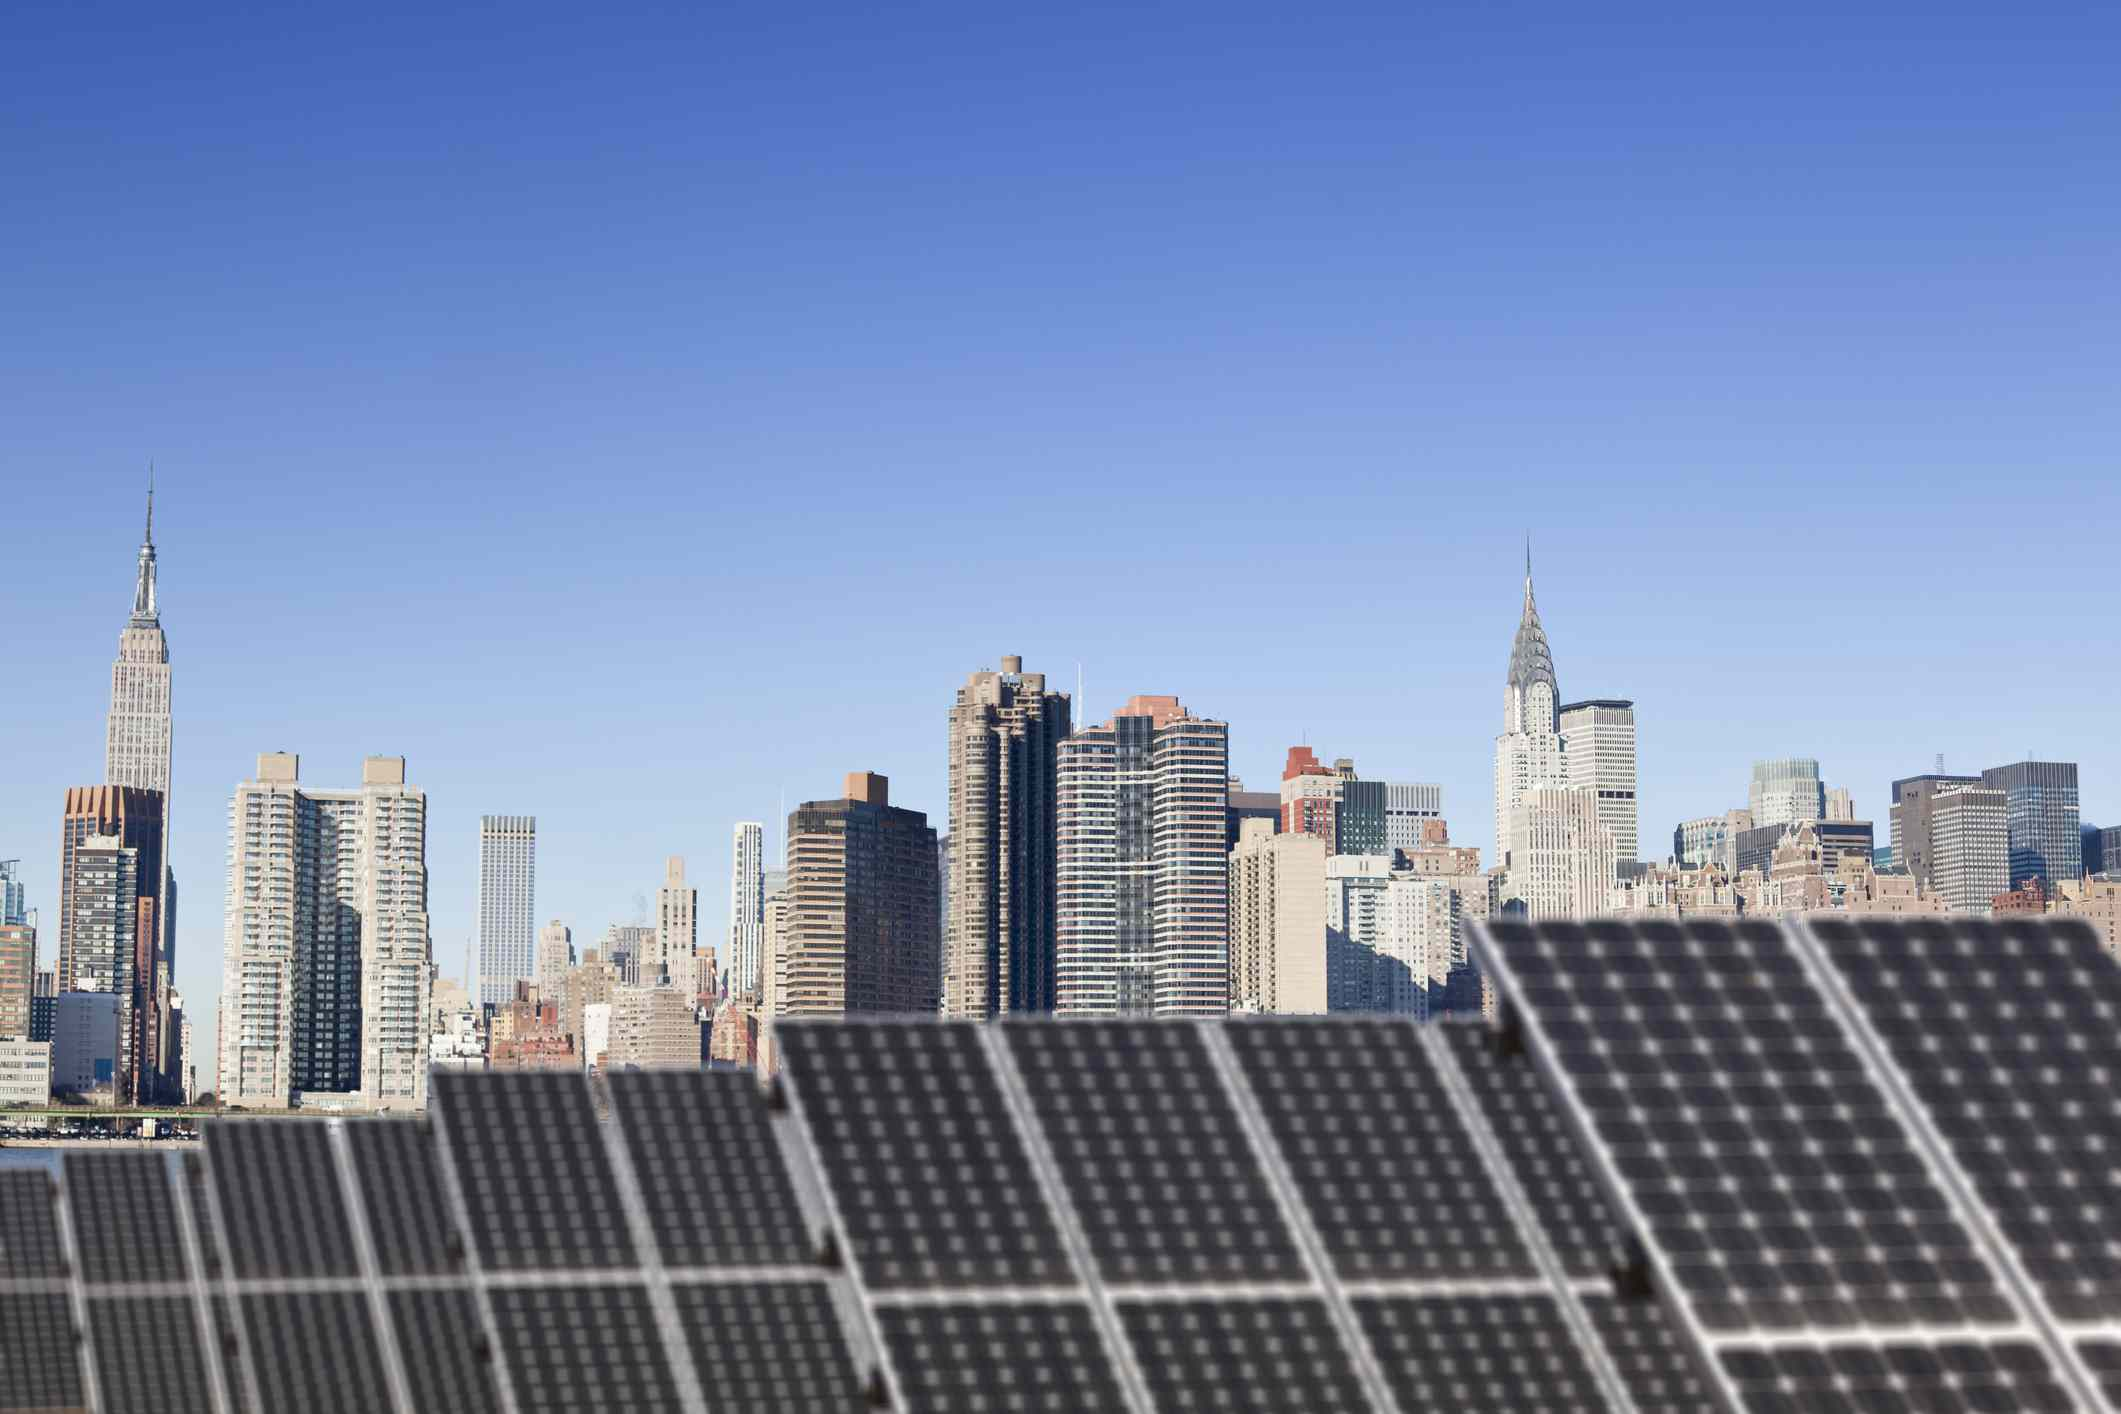 Solar panels on a roof with New York City in the background.